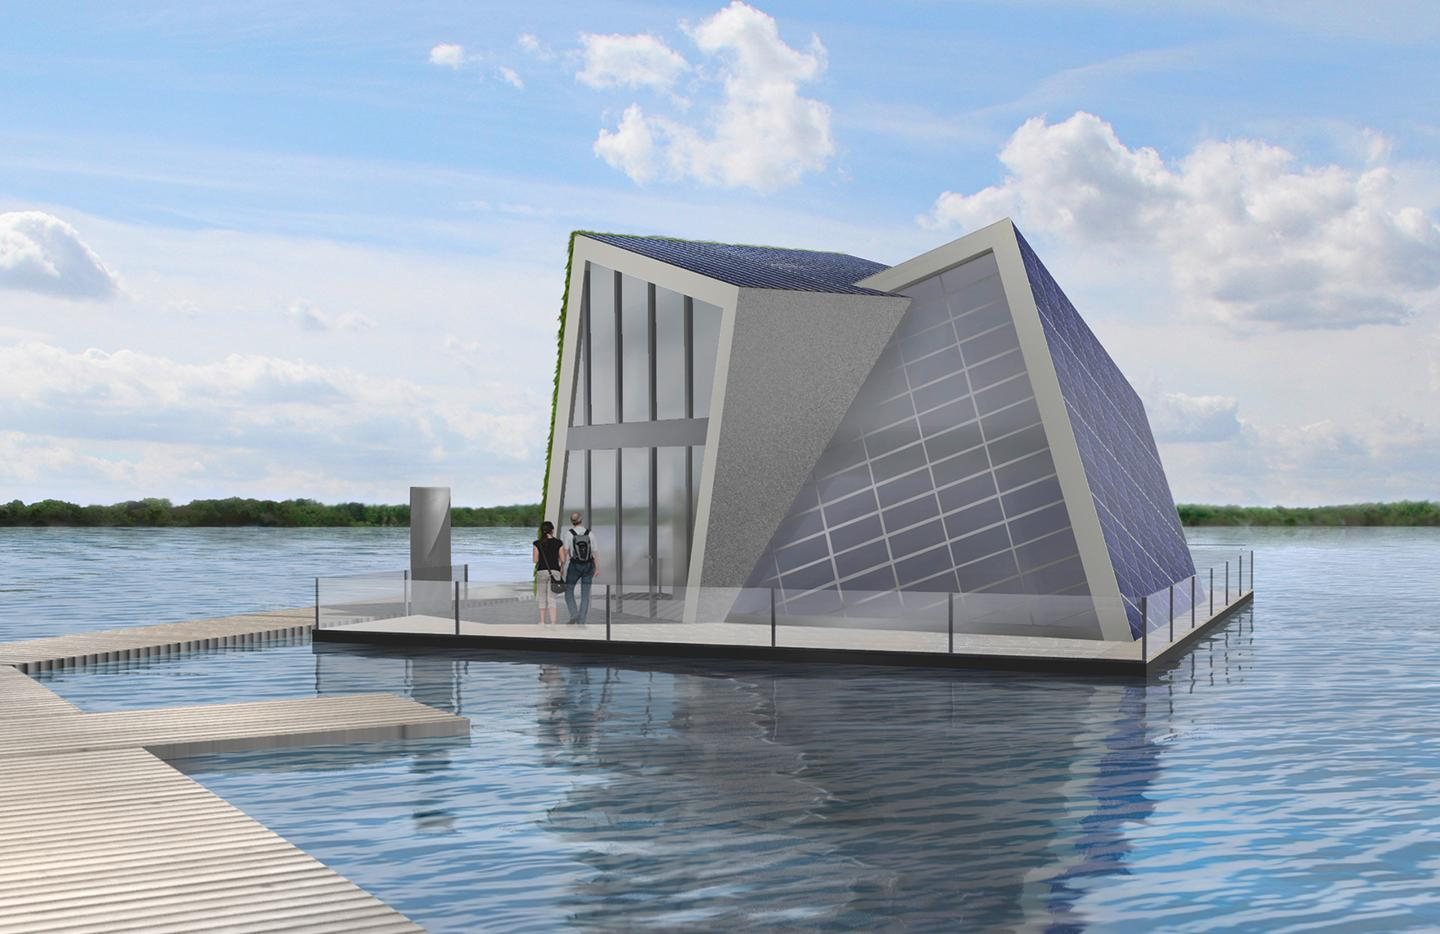 Building design of a floating house that provides its own heat and water